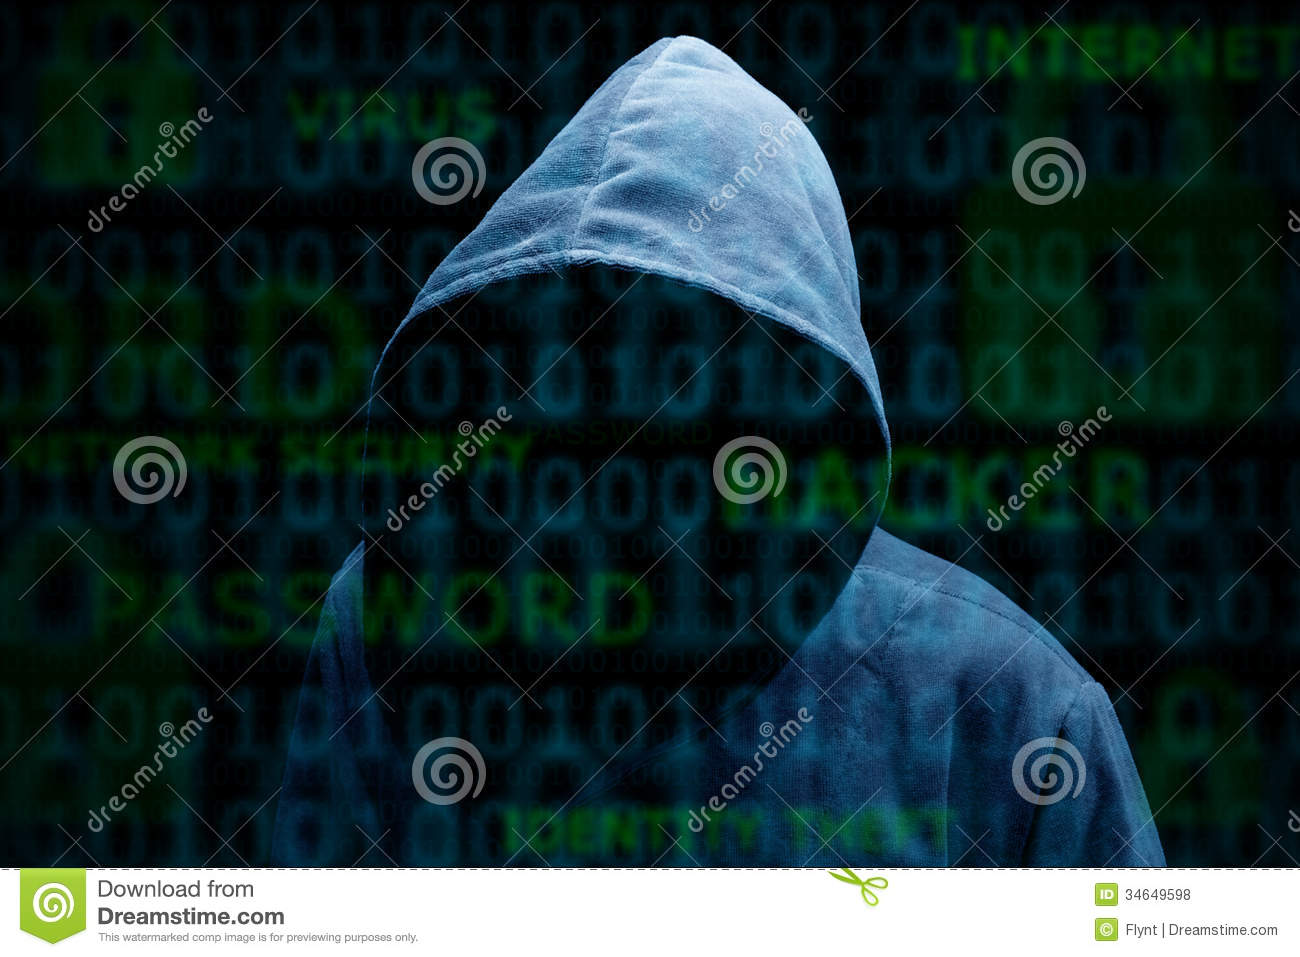 Hooded Silhouette Of A Hacker Stock Photo - Image of